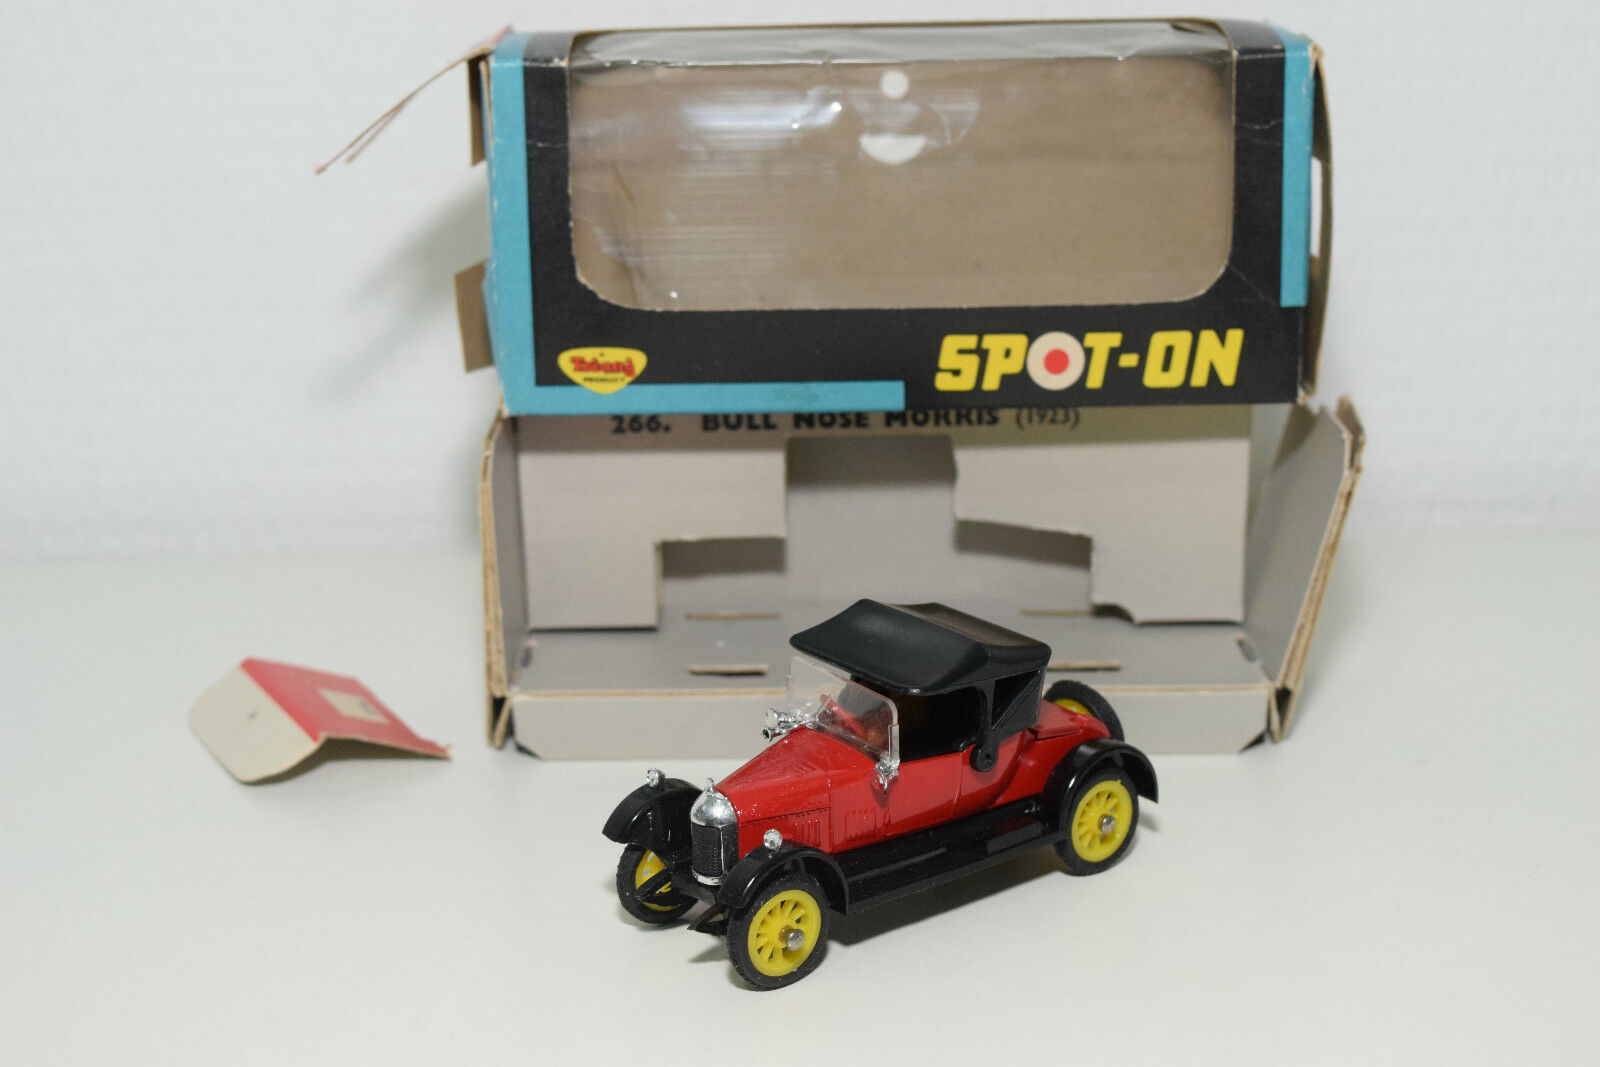 SPOTON SPOT-ON SPOT ON 266 BULL NOSE MORRIS 1923 rot MINT BOXED